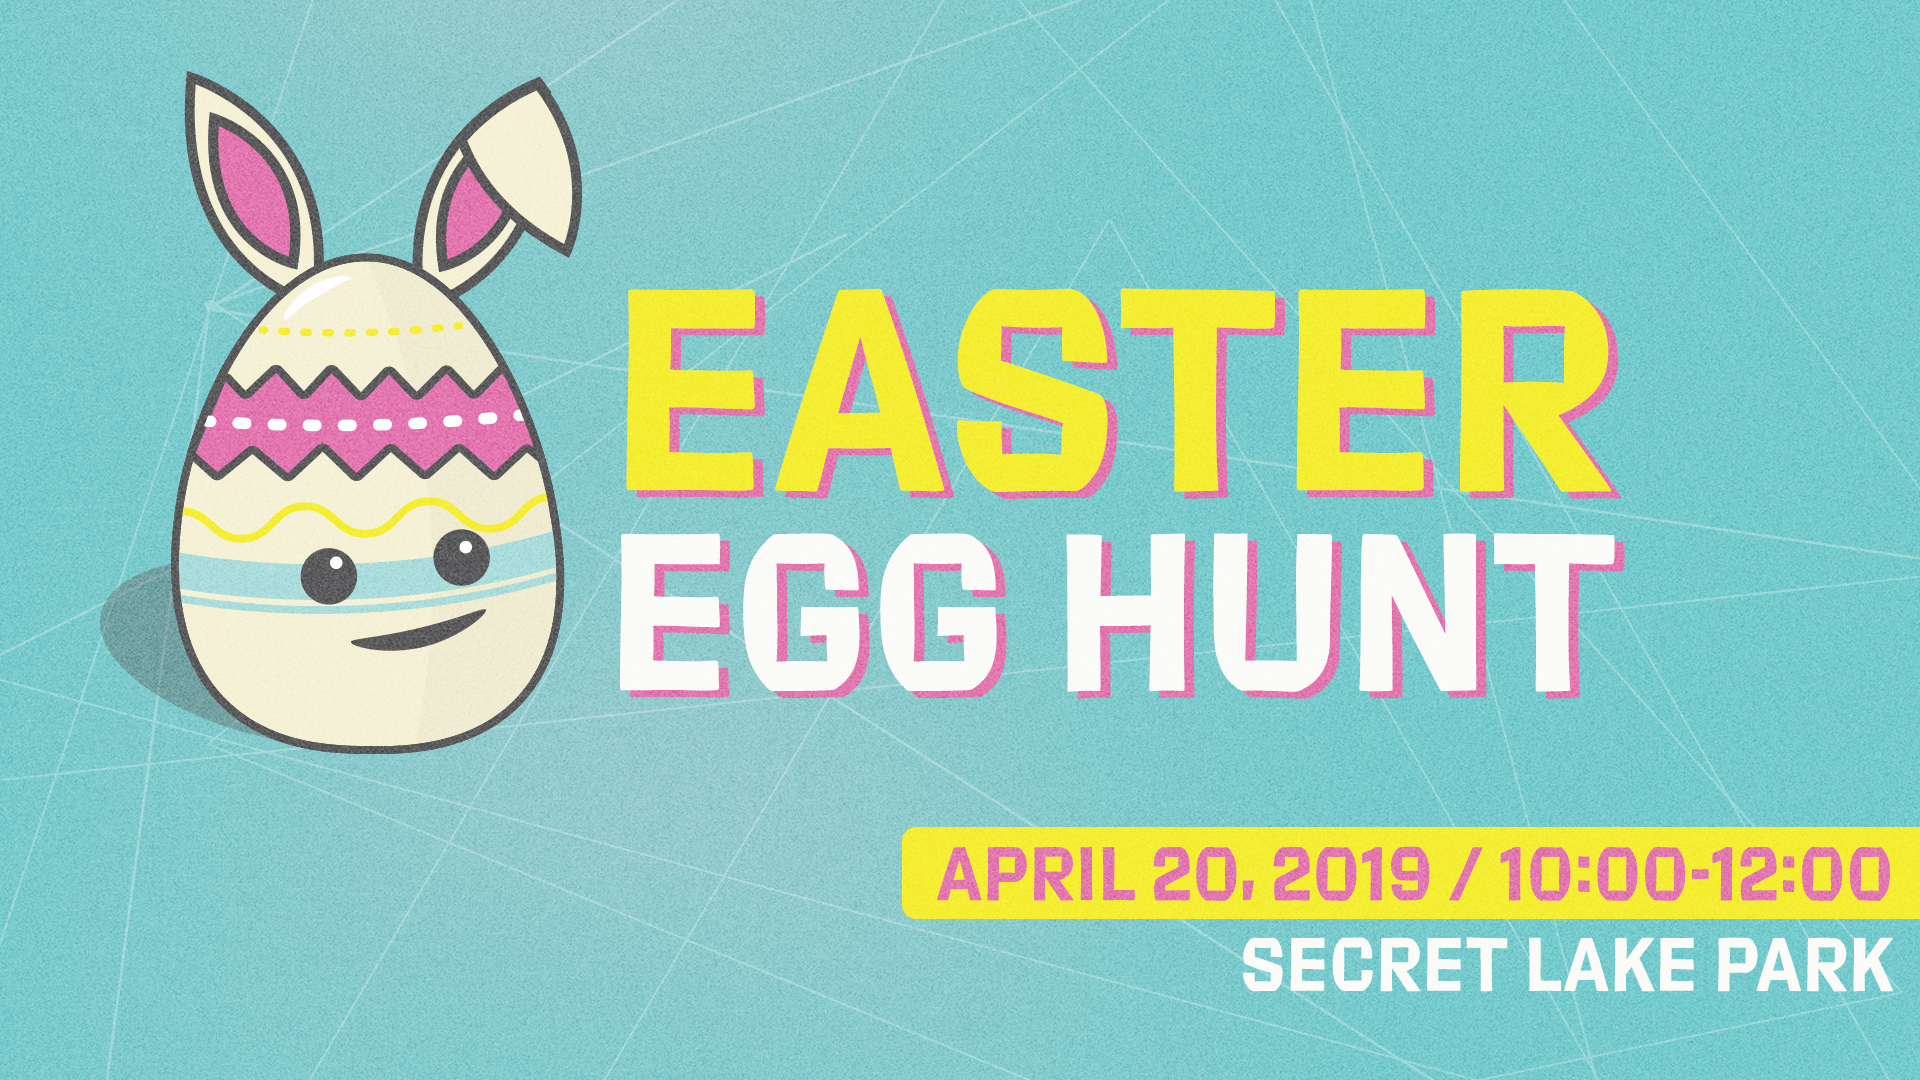 Easter Egg Hunt 2019 image